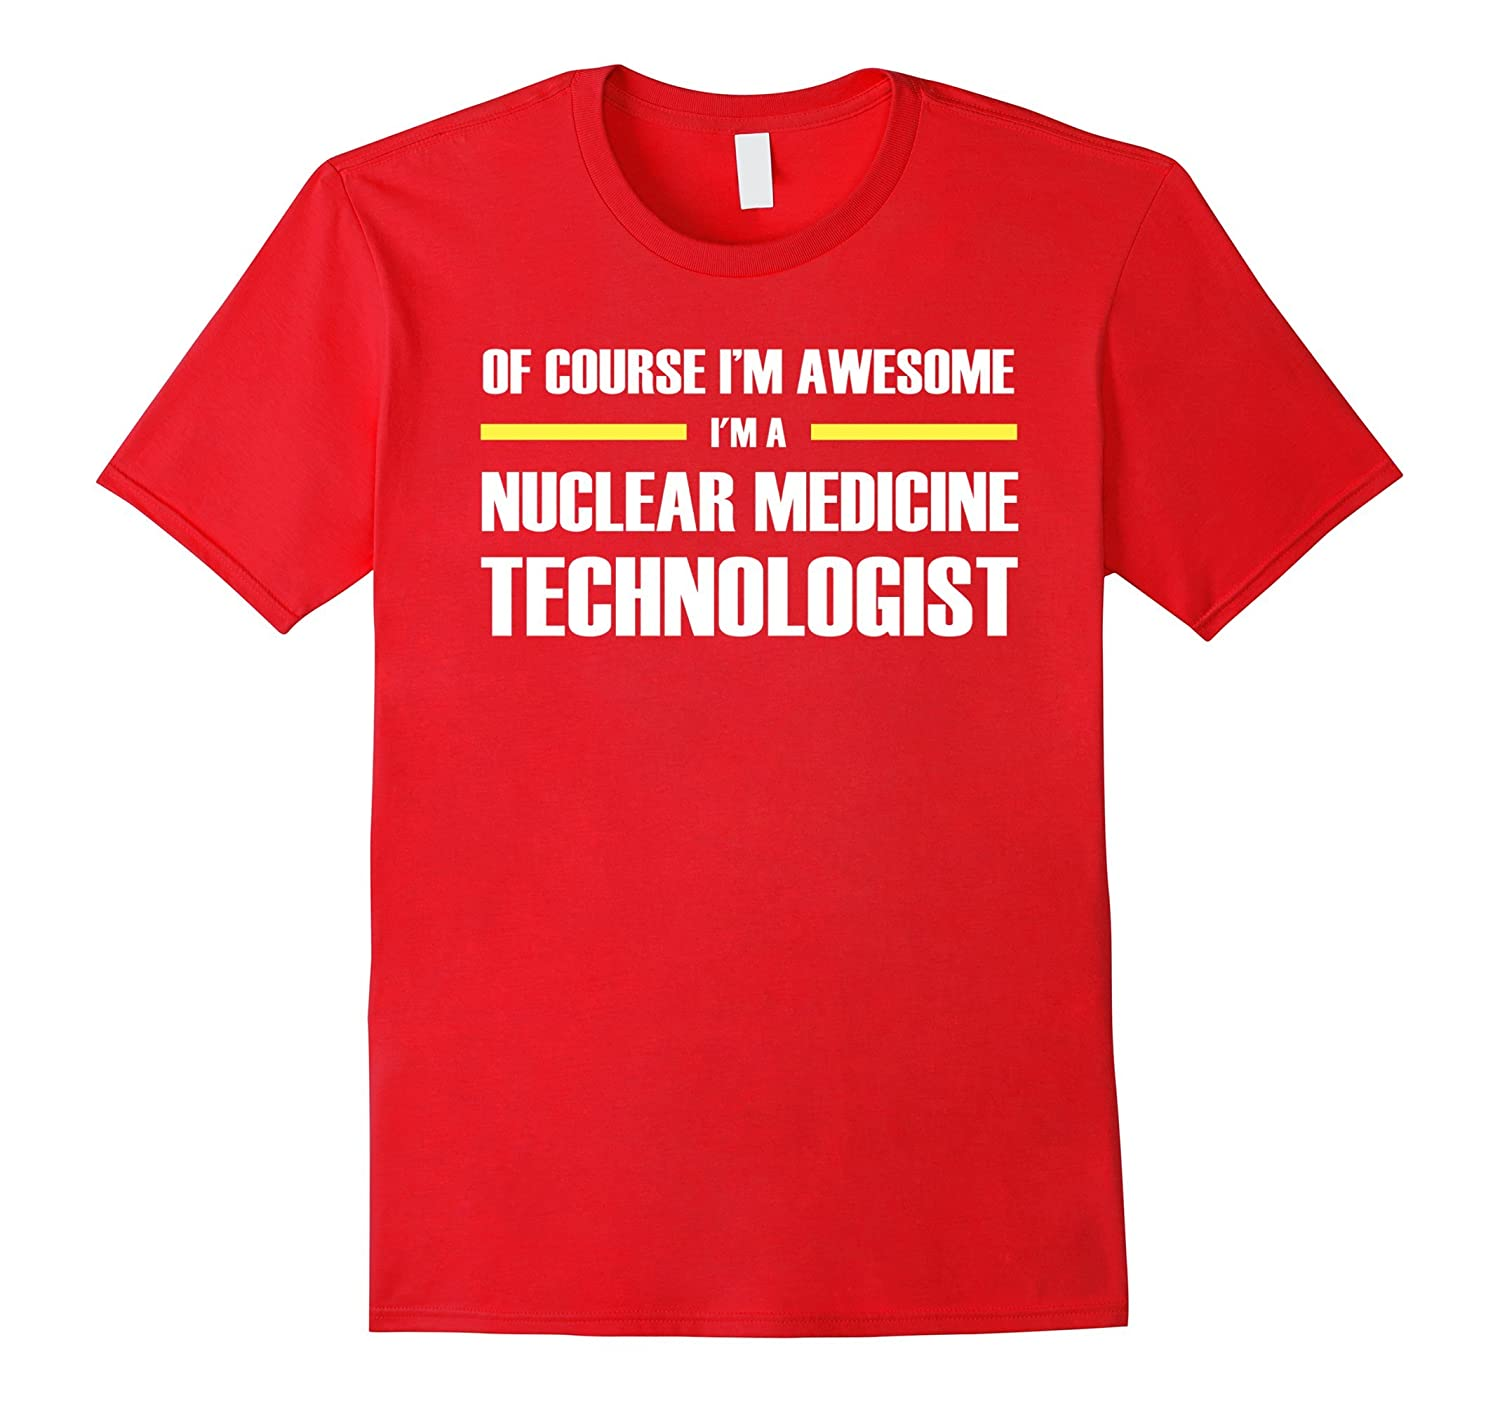 Nuclear medicine technologist shirts i m awesome t shirt for Nuclear medicine t shirts